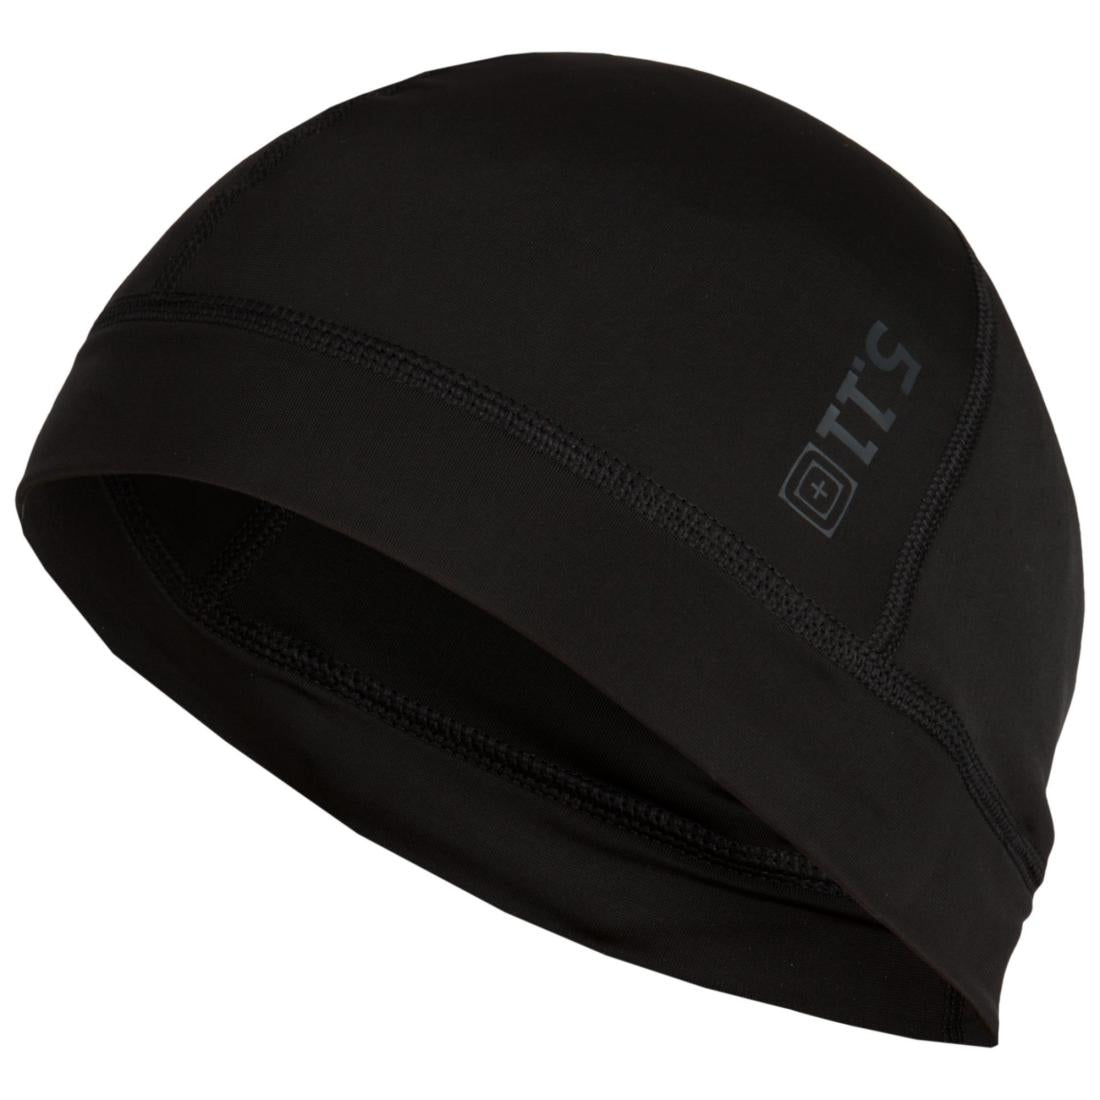 5.11 Tactical 89367 Men Under-Helmet Skull Cap